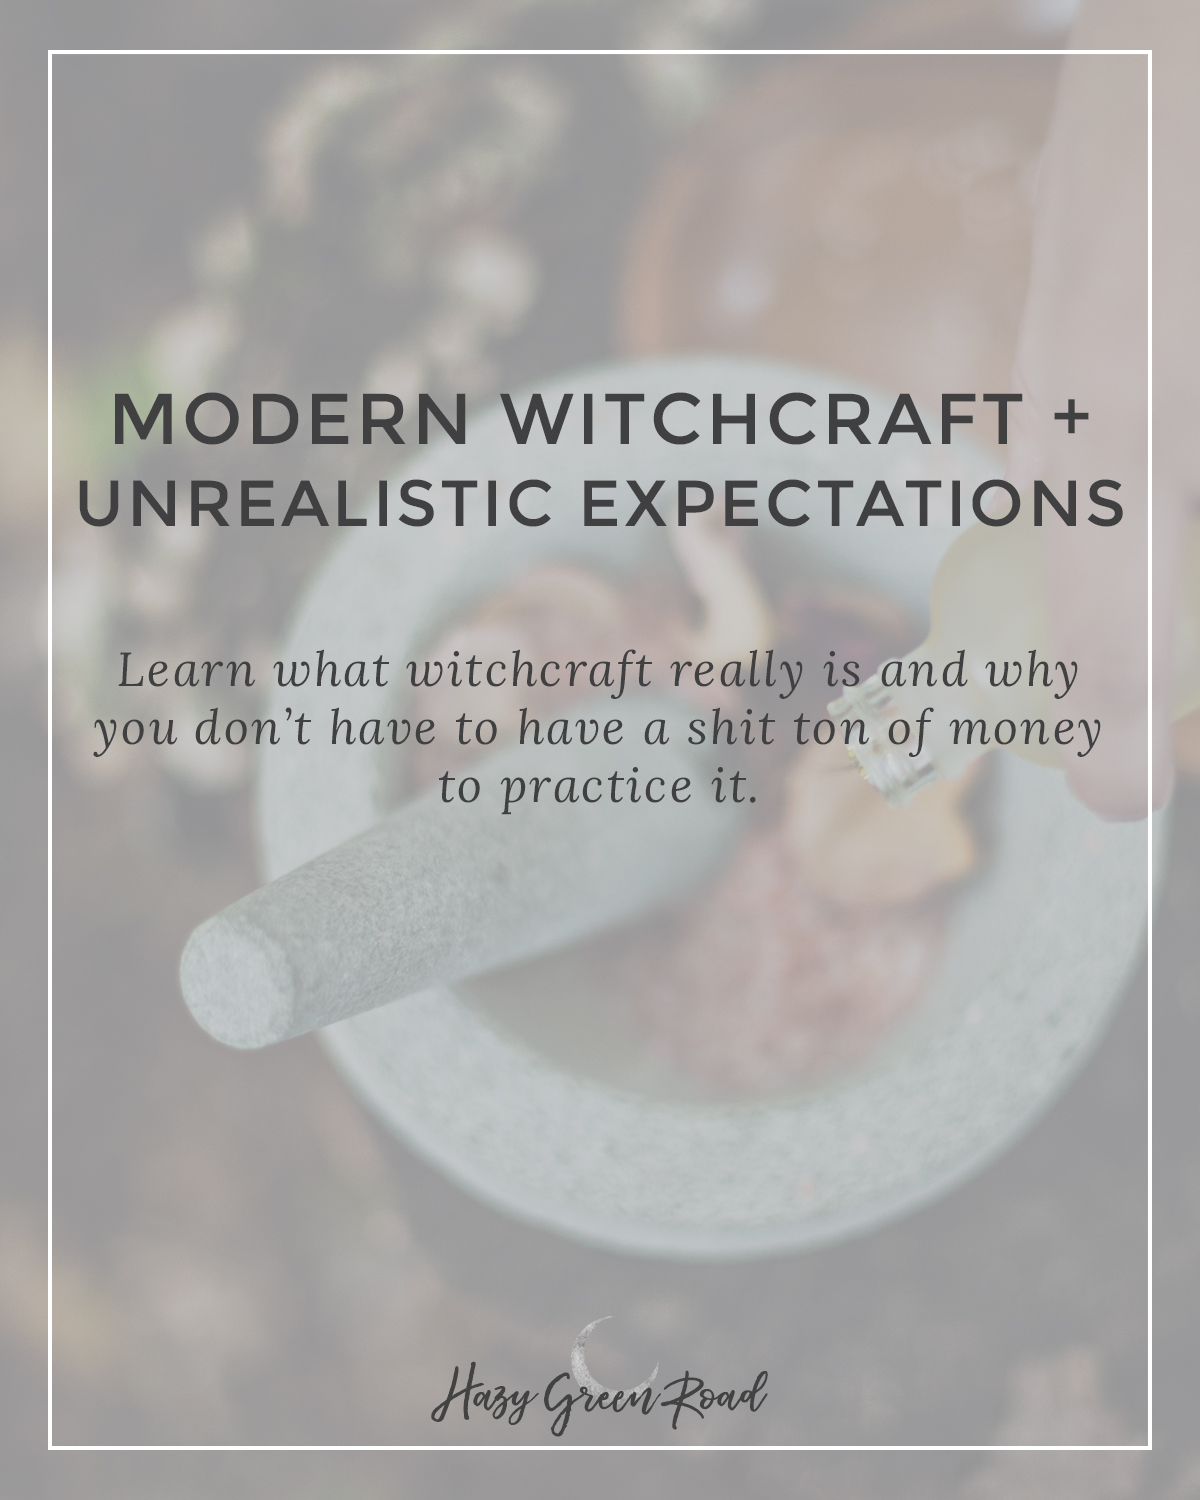 Learn what witchcraft really is and why you don't have to have a shit ton of money to practice it.